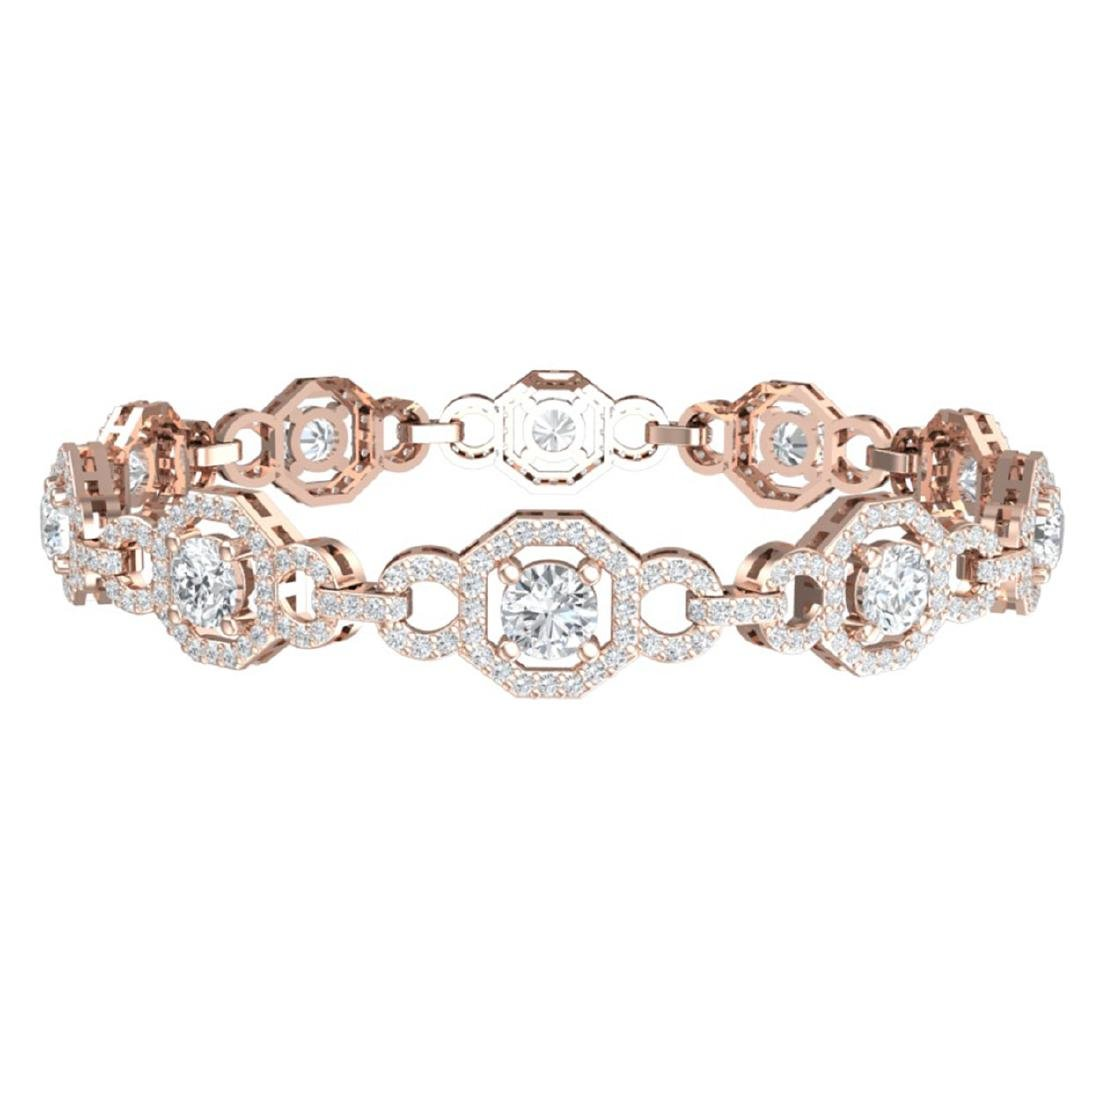 12 CTW Certified SI/I Diamond Halo Bracelet 18K Rose - 3